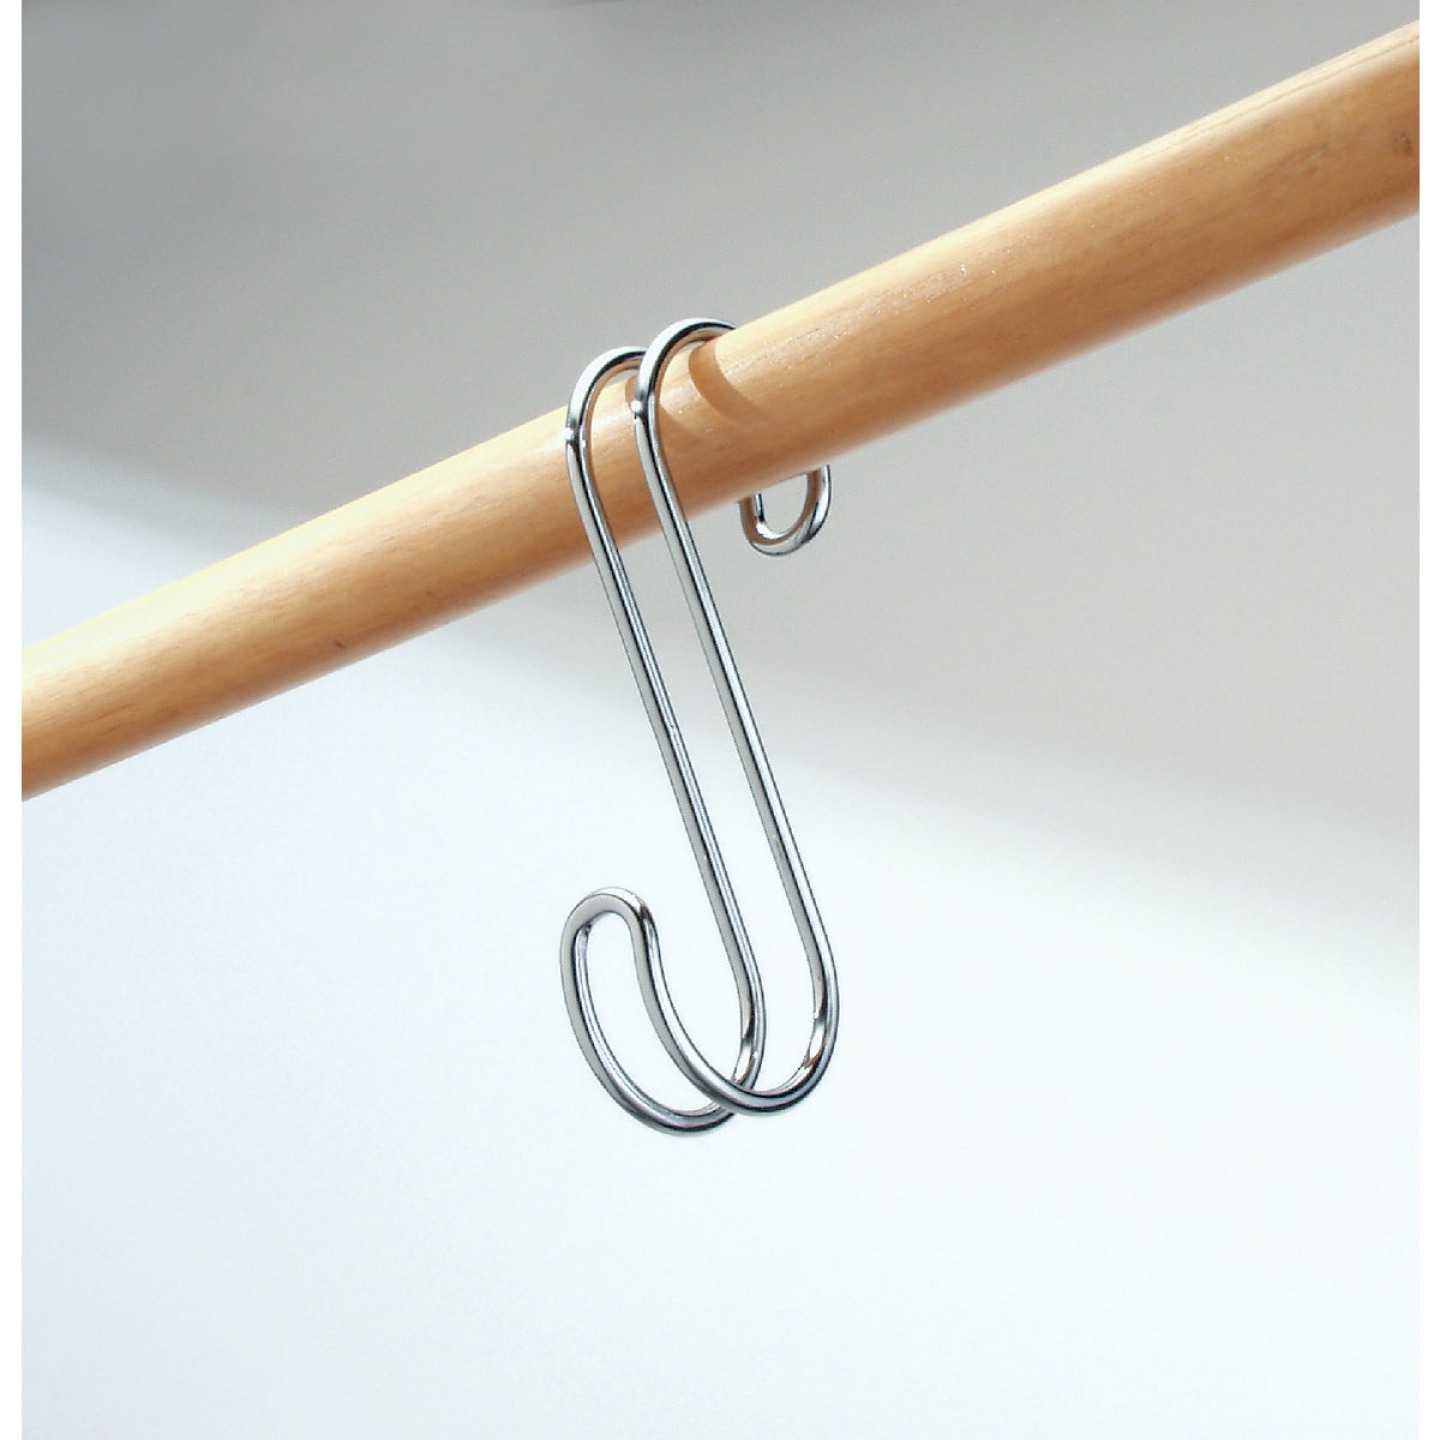 iDesign Classico Chrome Closet Rod S-Hook Image 2